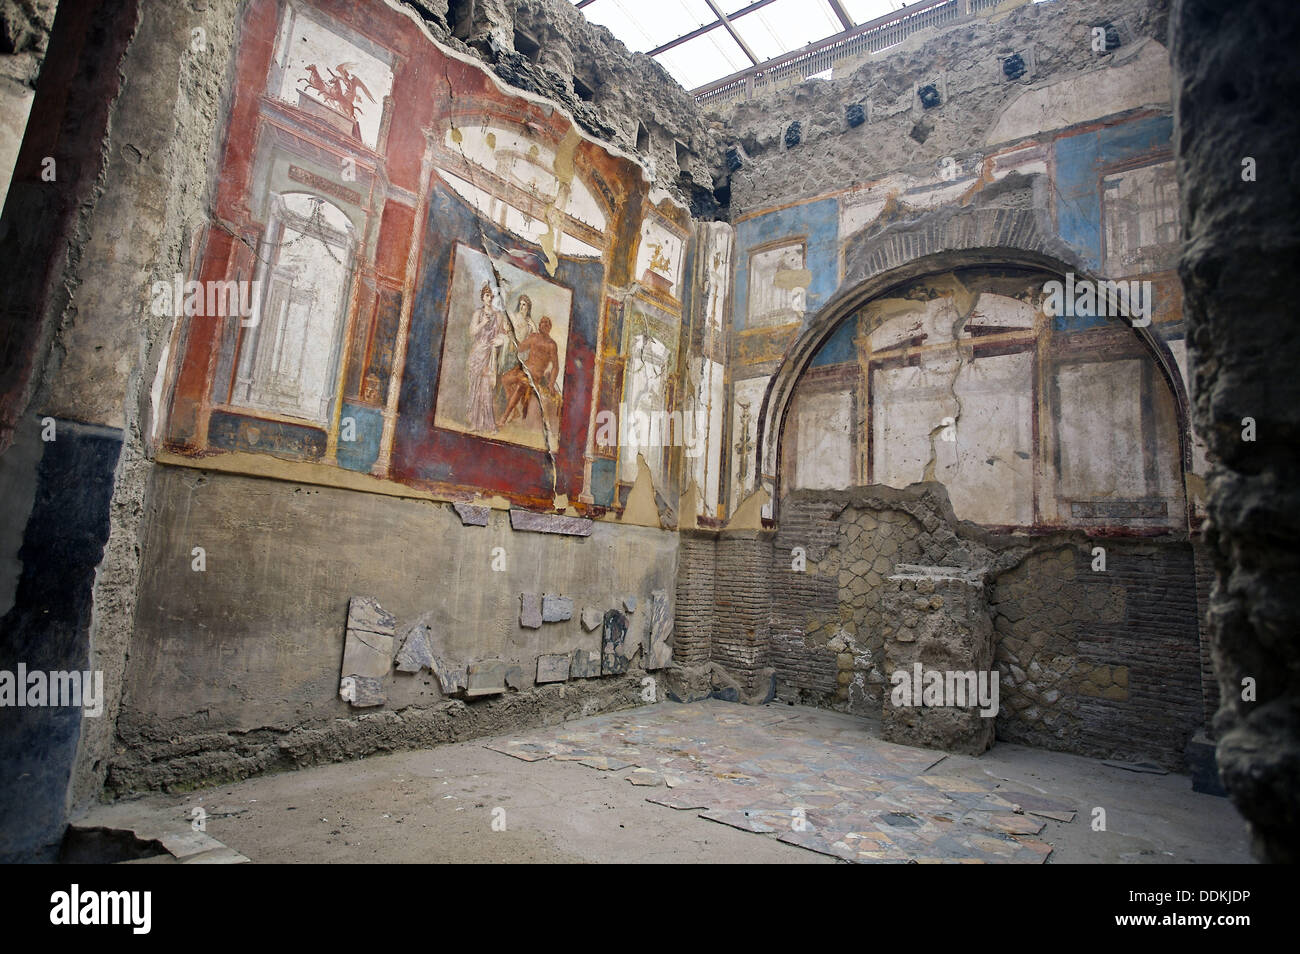 Fresco in the College of the Augustans´ depicting the myth of Hercules, ruins of the old Roman city of Herculaneum. Italy - Stock Image